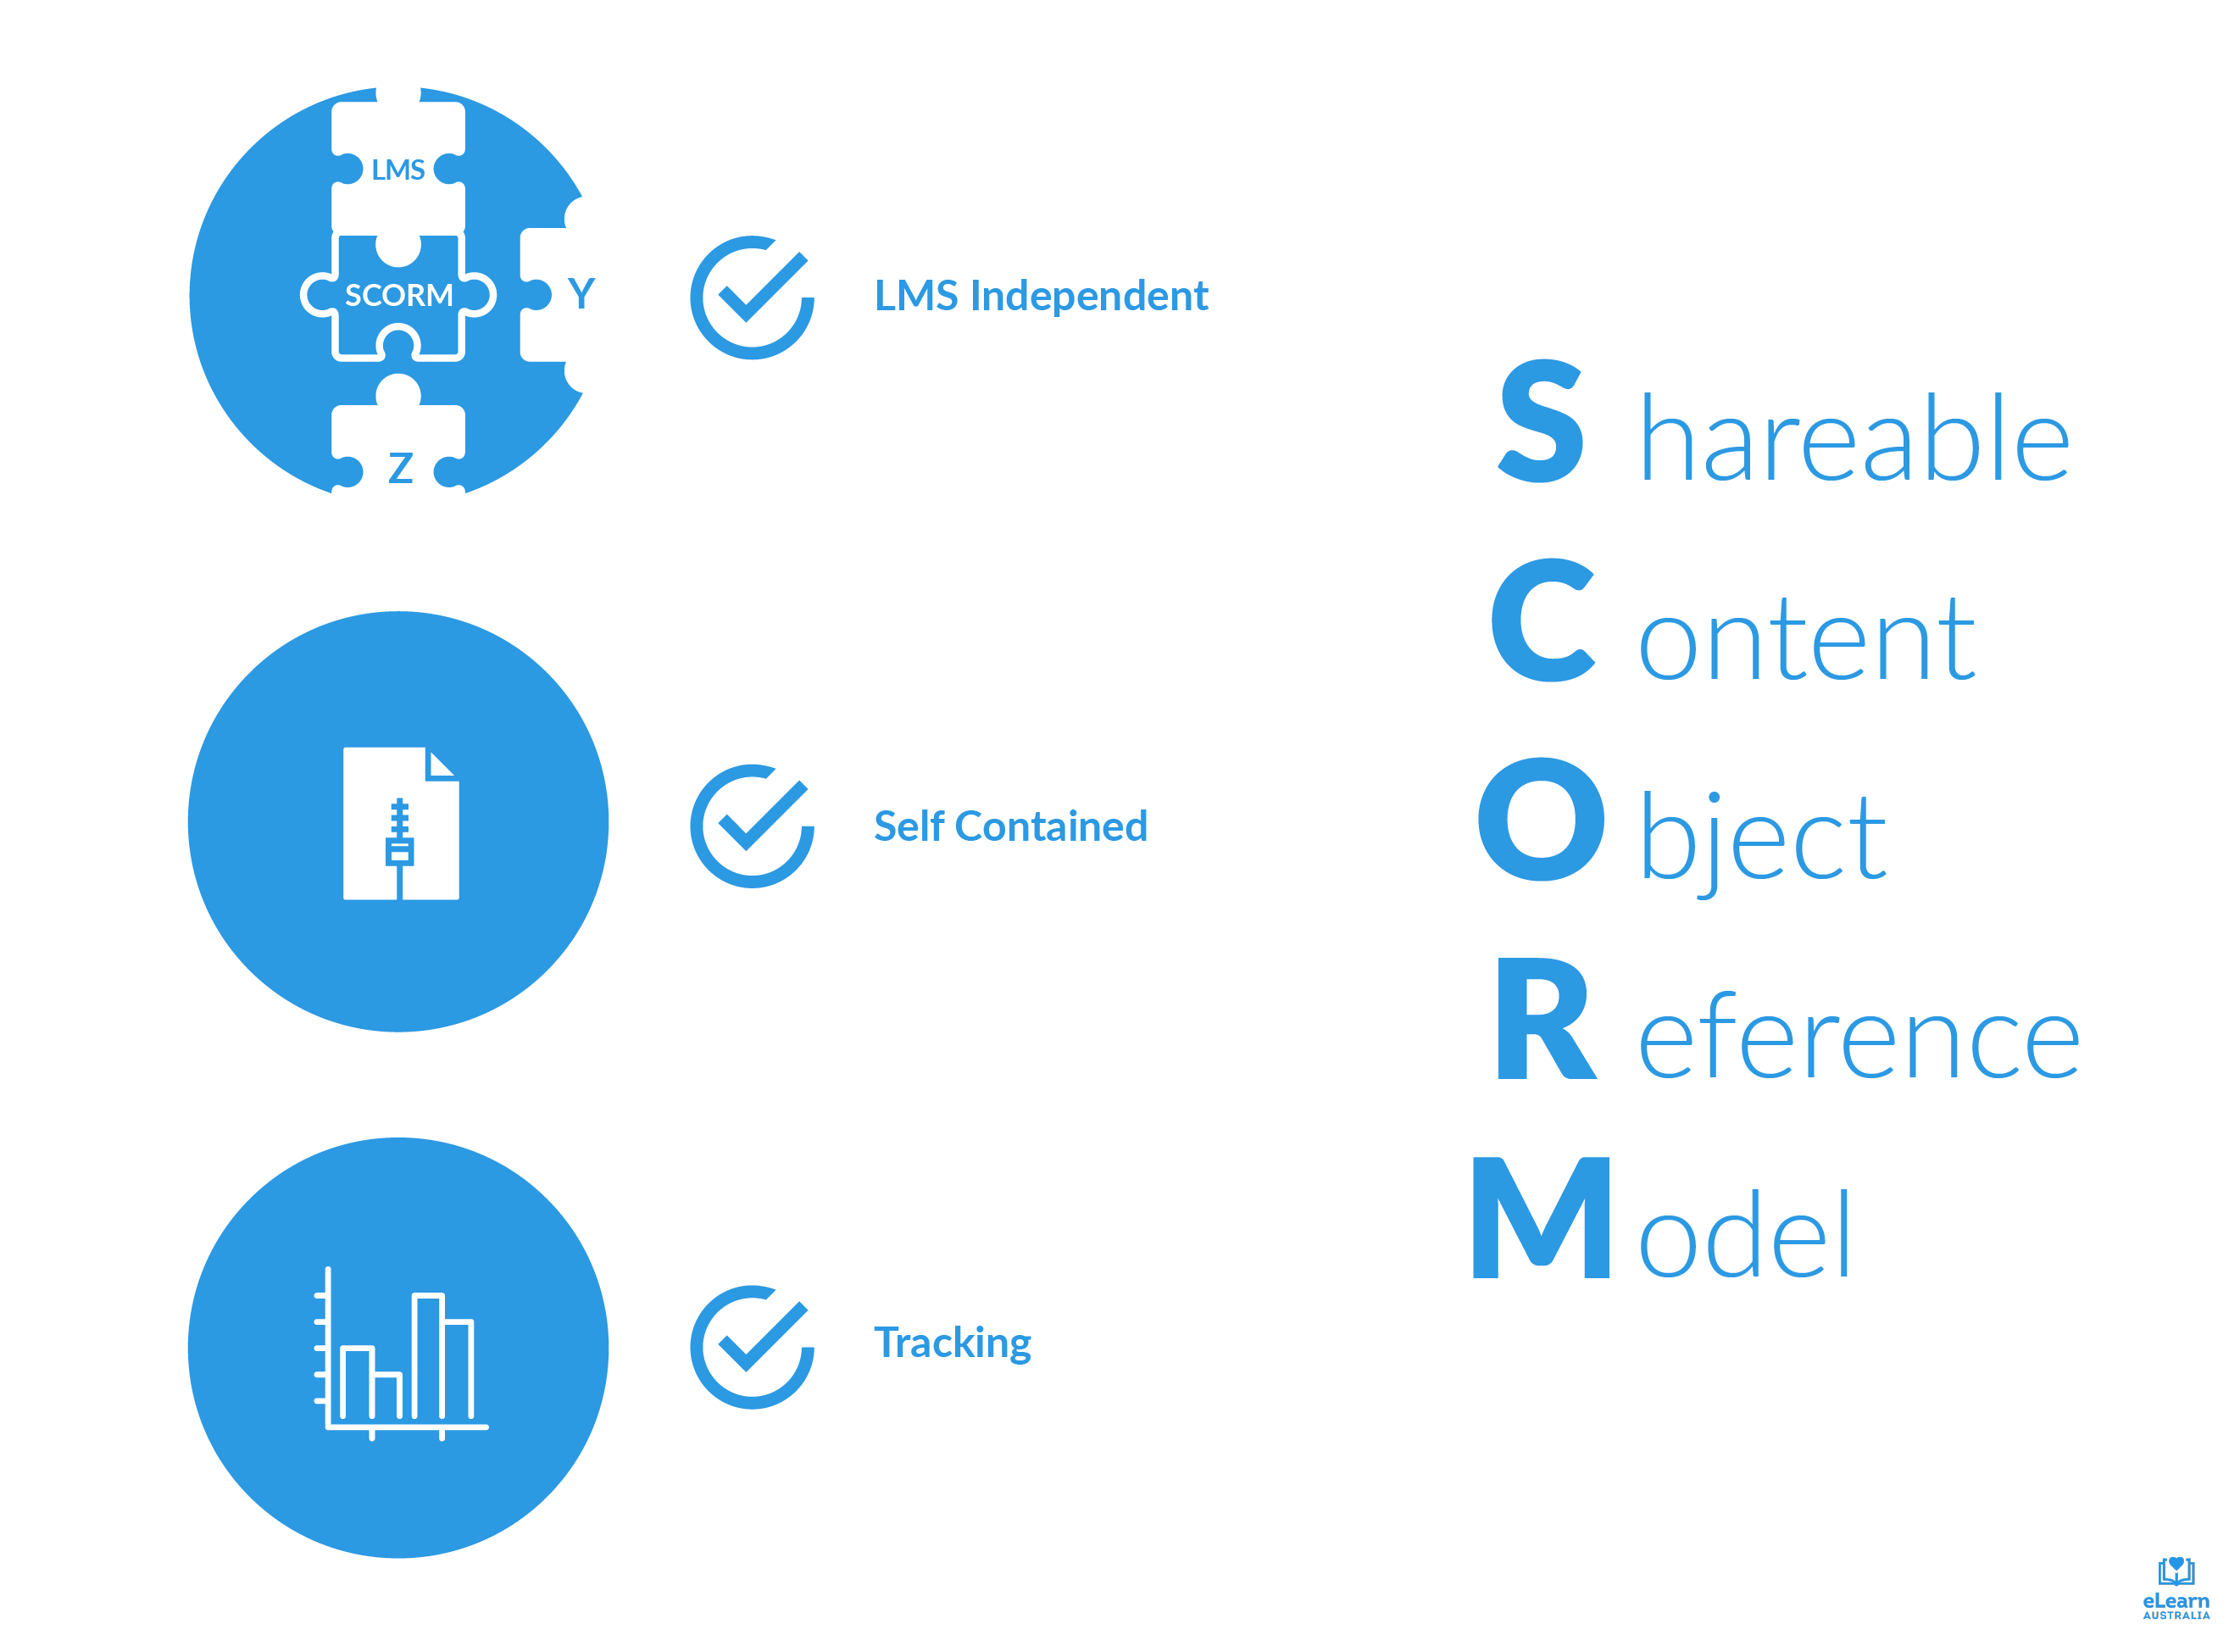 SCORM (Shareable Content Object Reference Model) is LMS independent, self contained and can track student results.